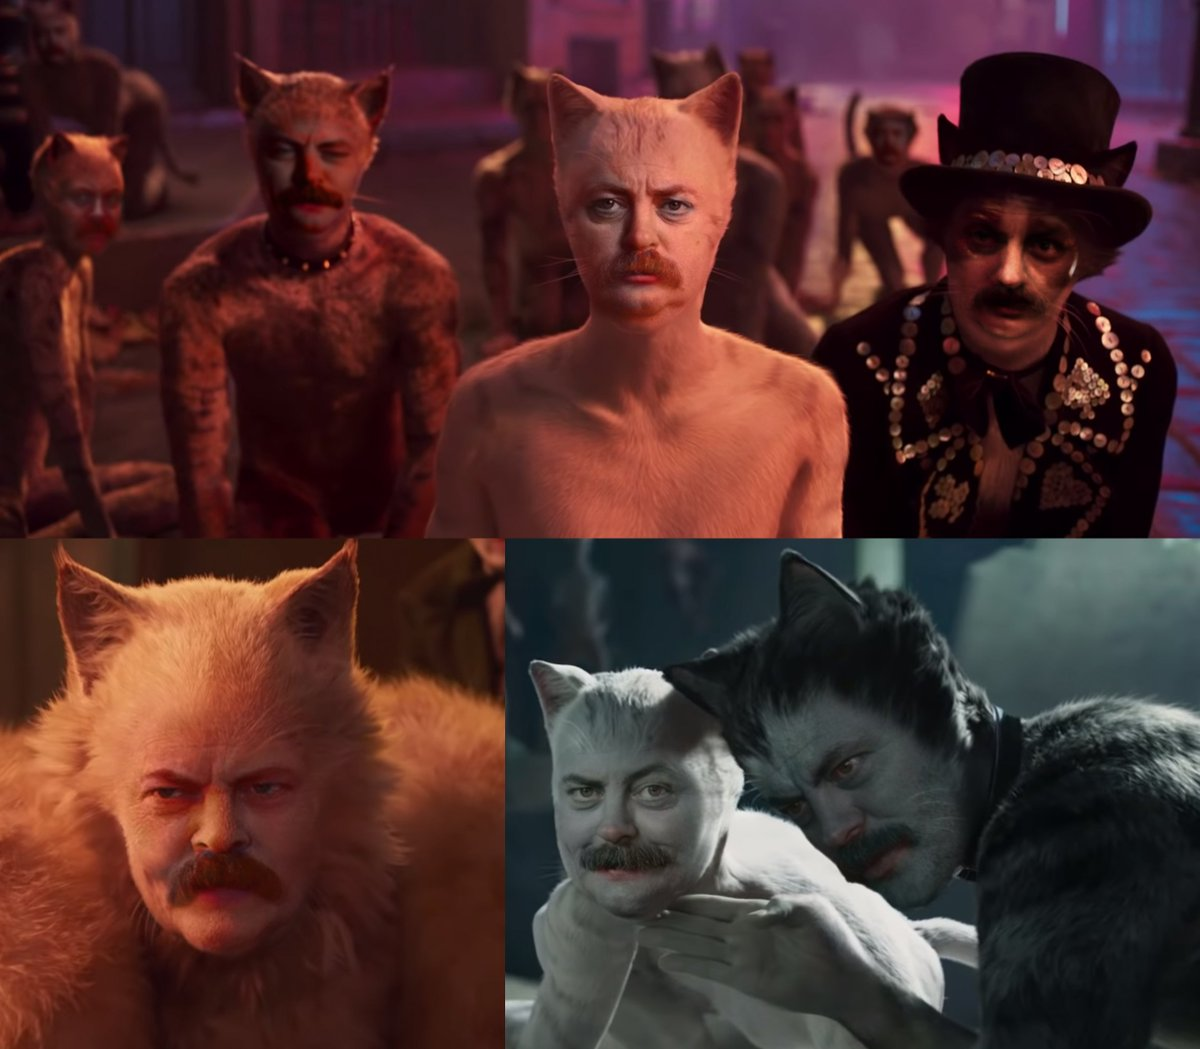 Cats (2019) but every character is played by @Nick_Offerman